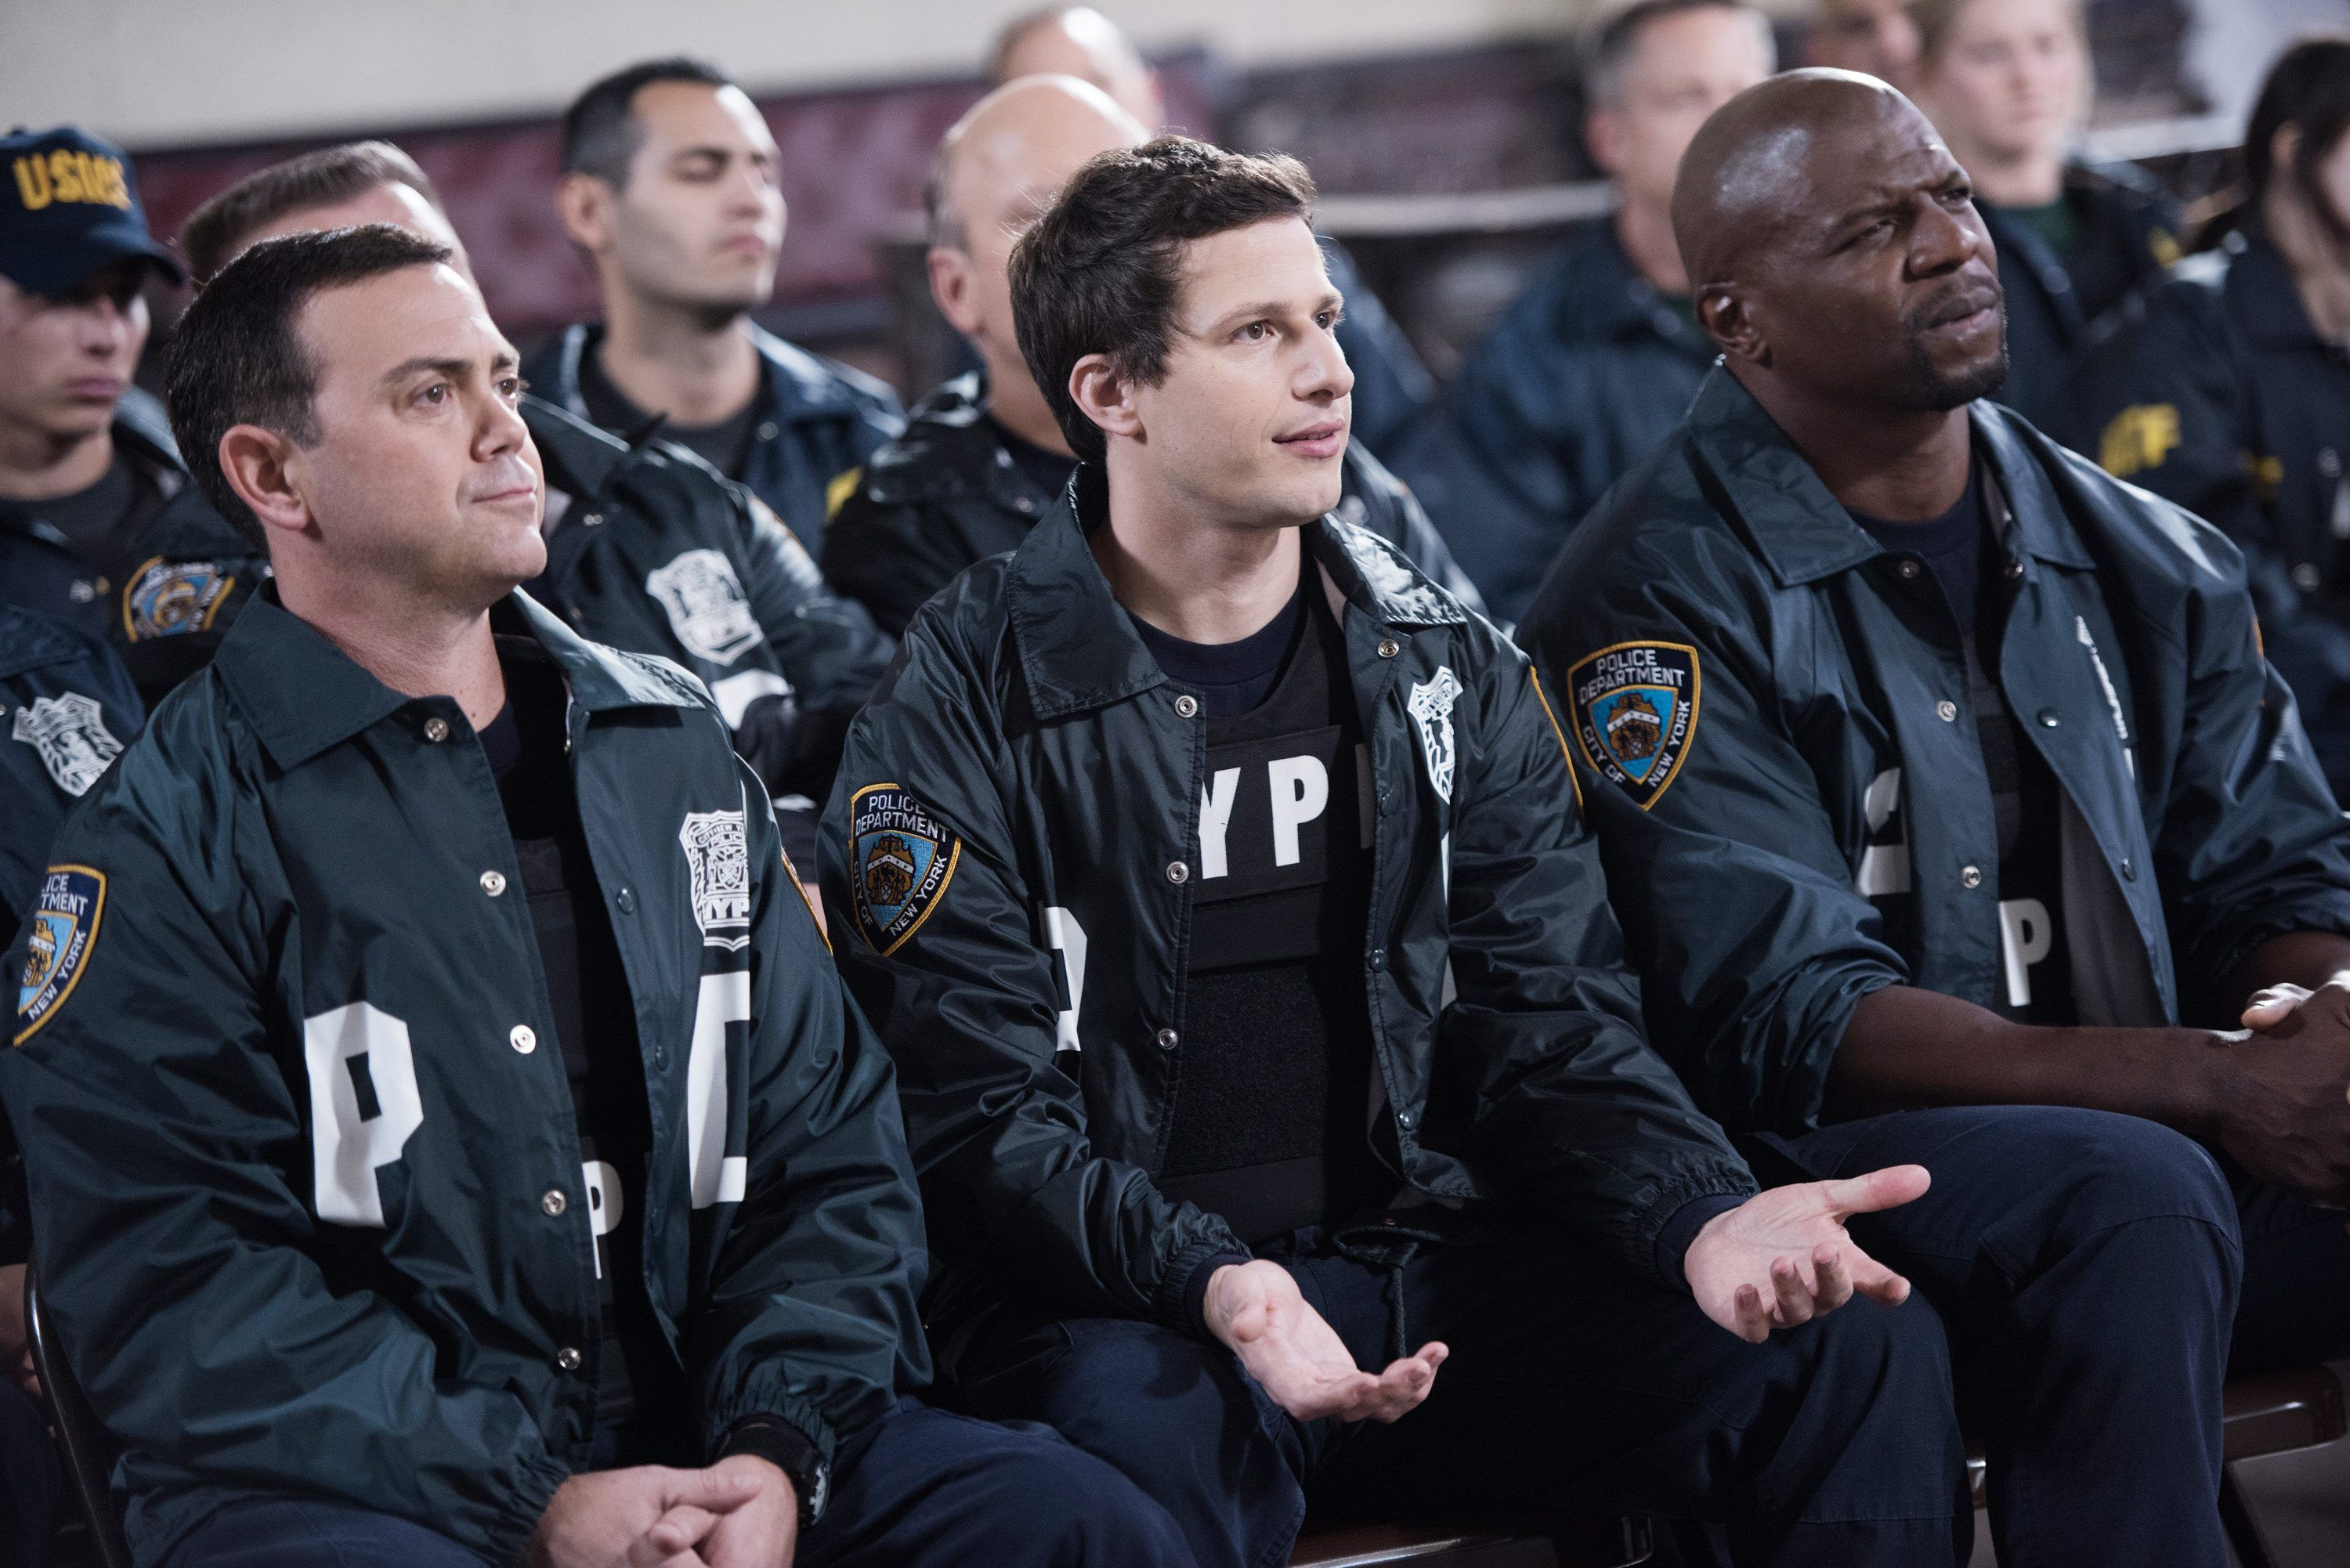 15 Things You Didn't Know About Brooklyn Nine-Nine - Fame10